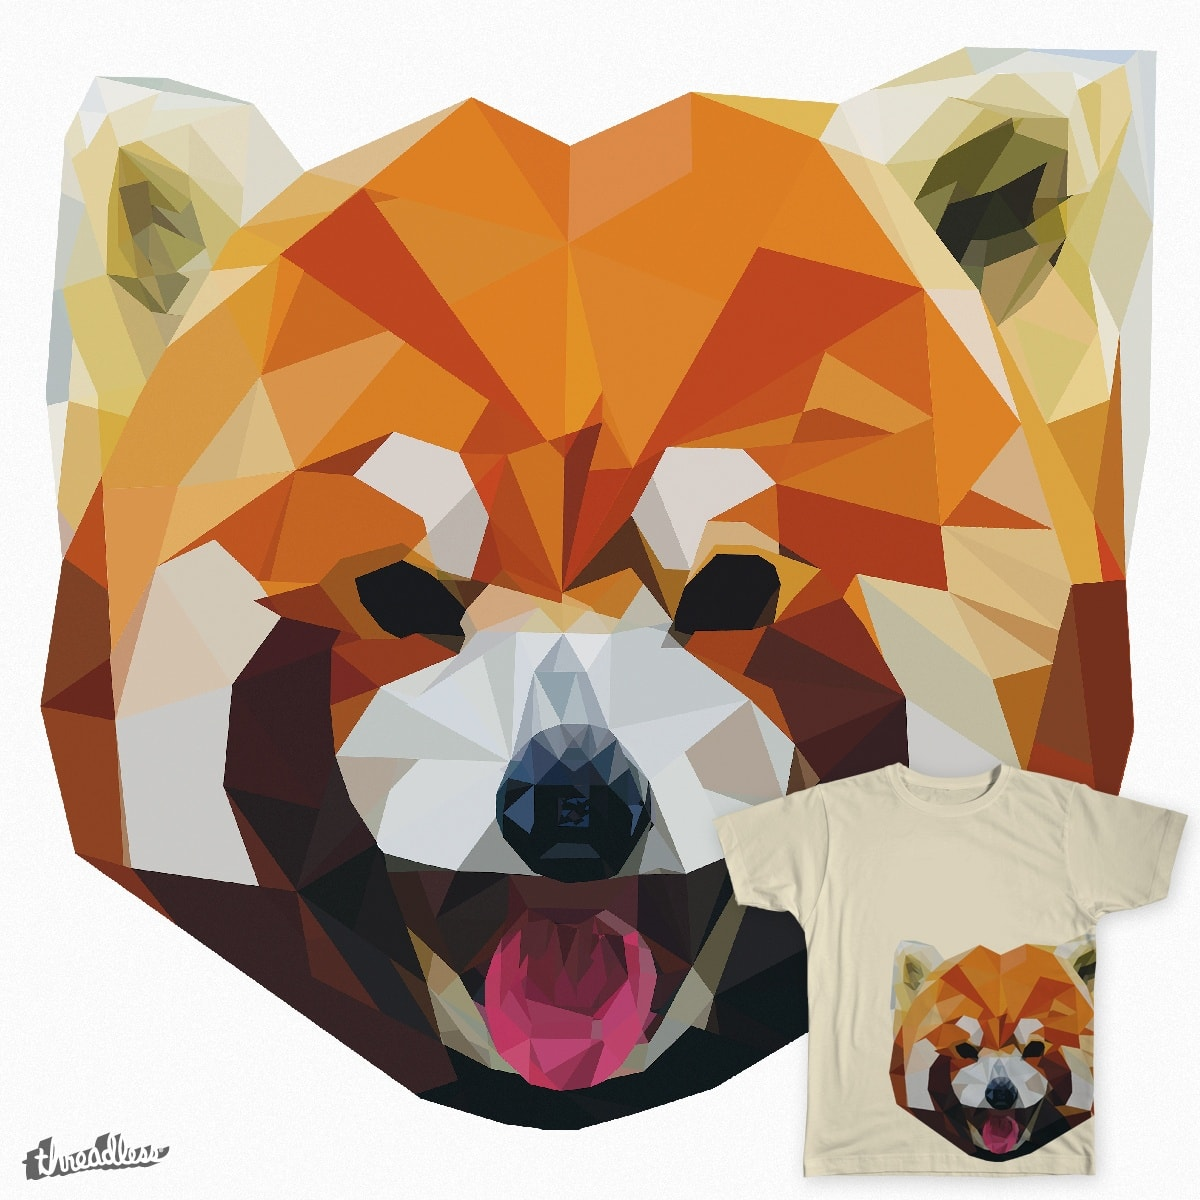 Geometric Red Panda by mbps on Threadless